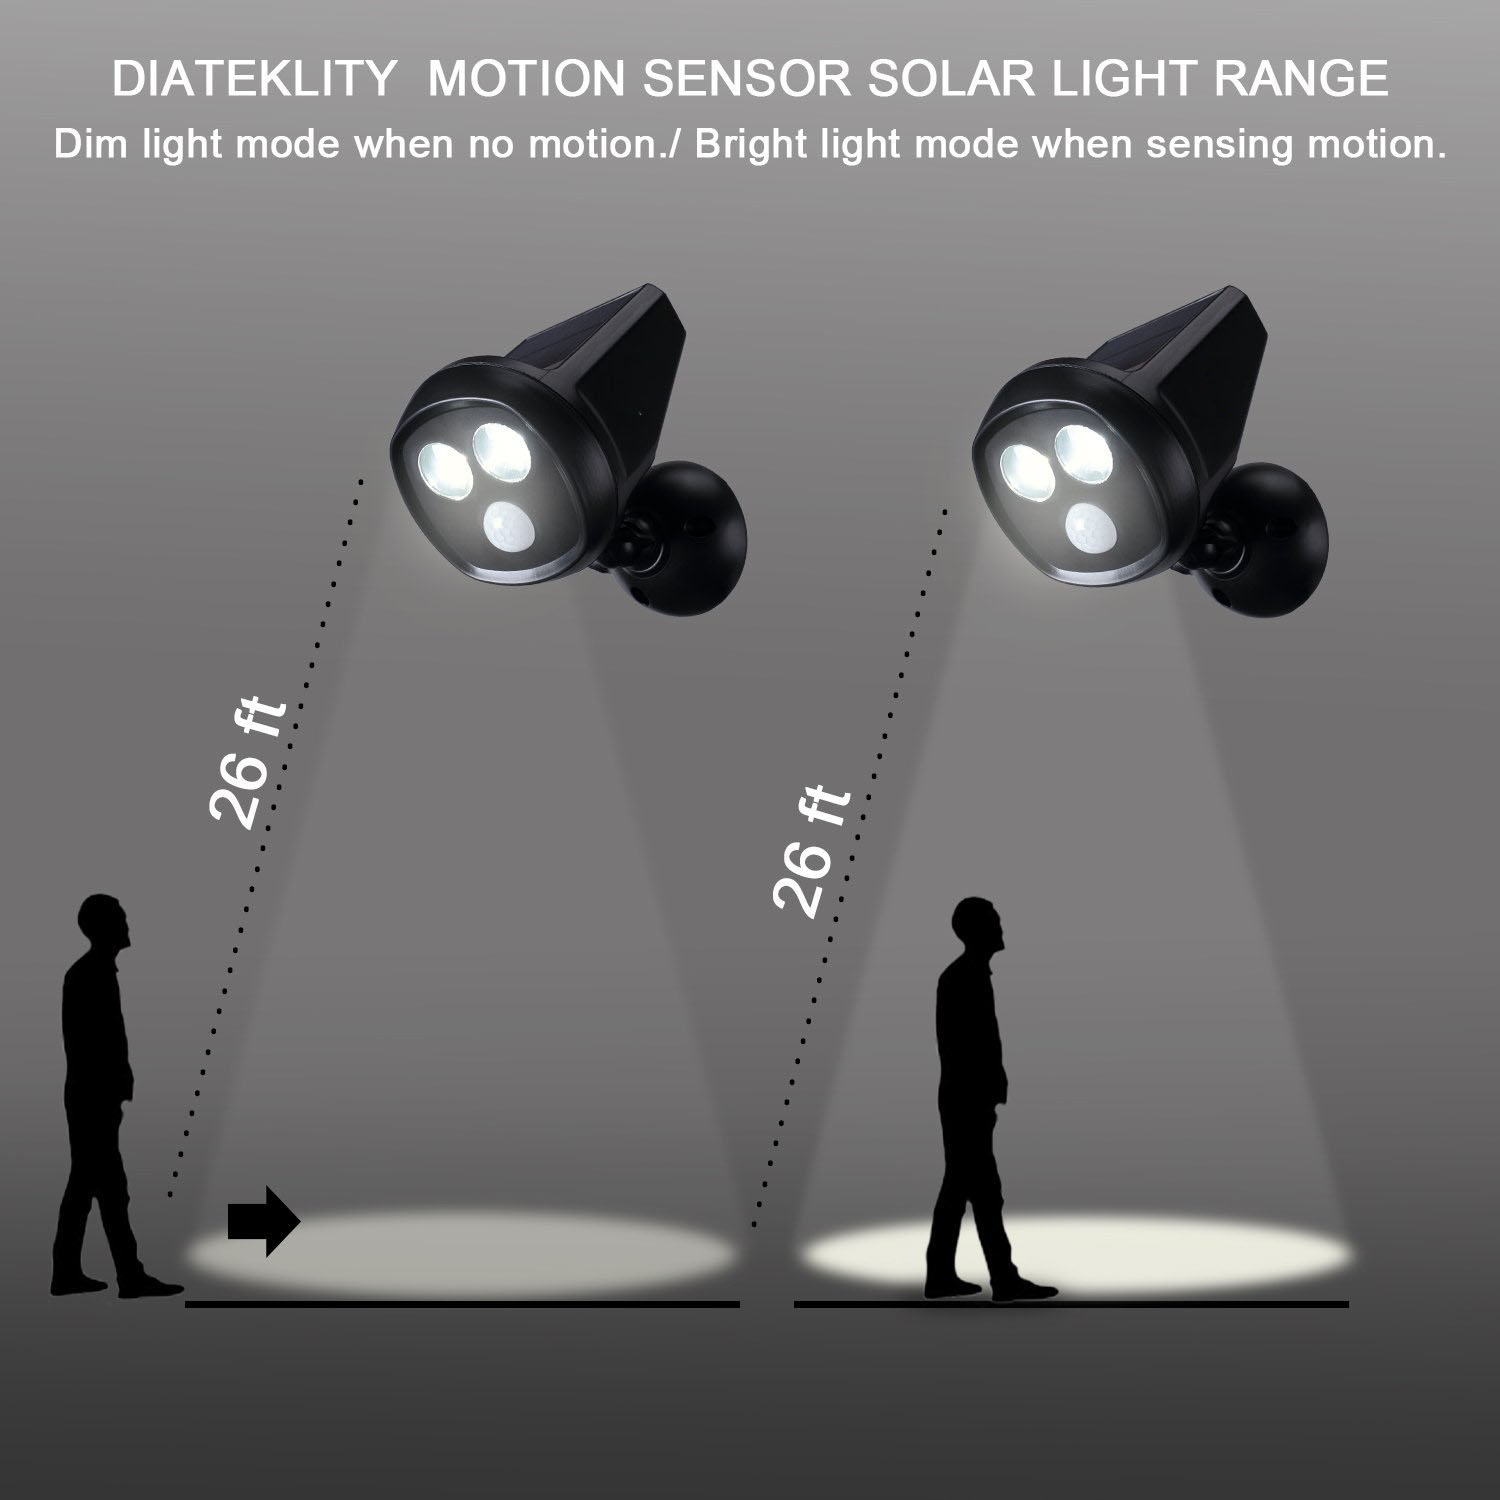 led motion sensor light wireless spotlight solar motion light solar powered outdoor lamp - Led Motion Sensor Light